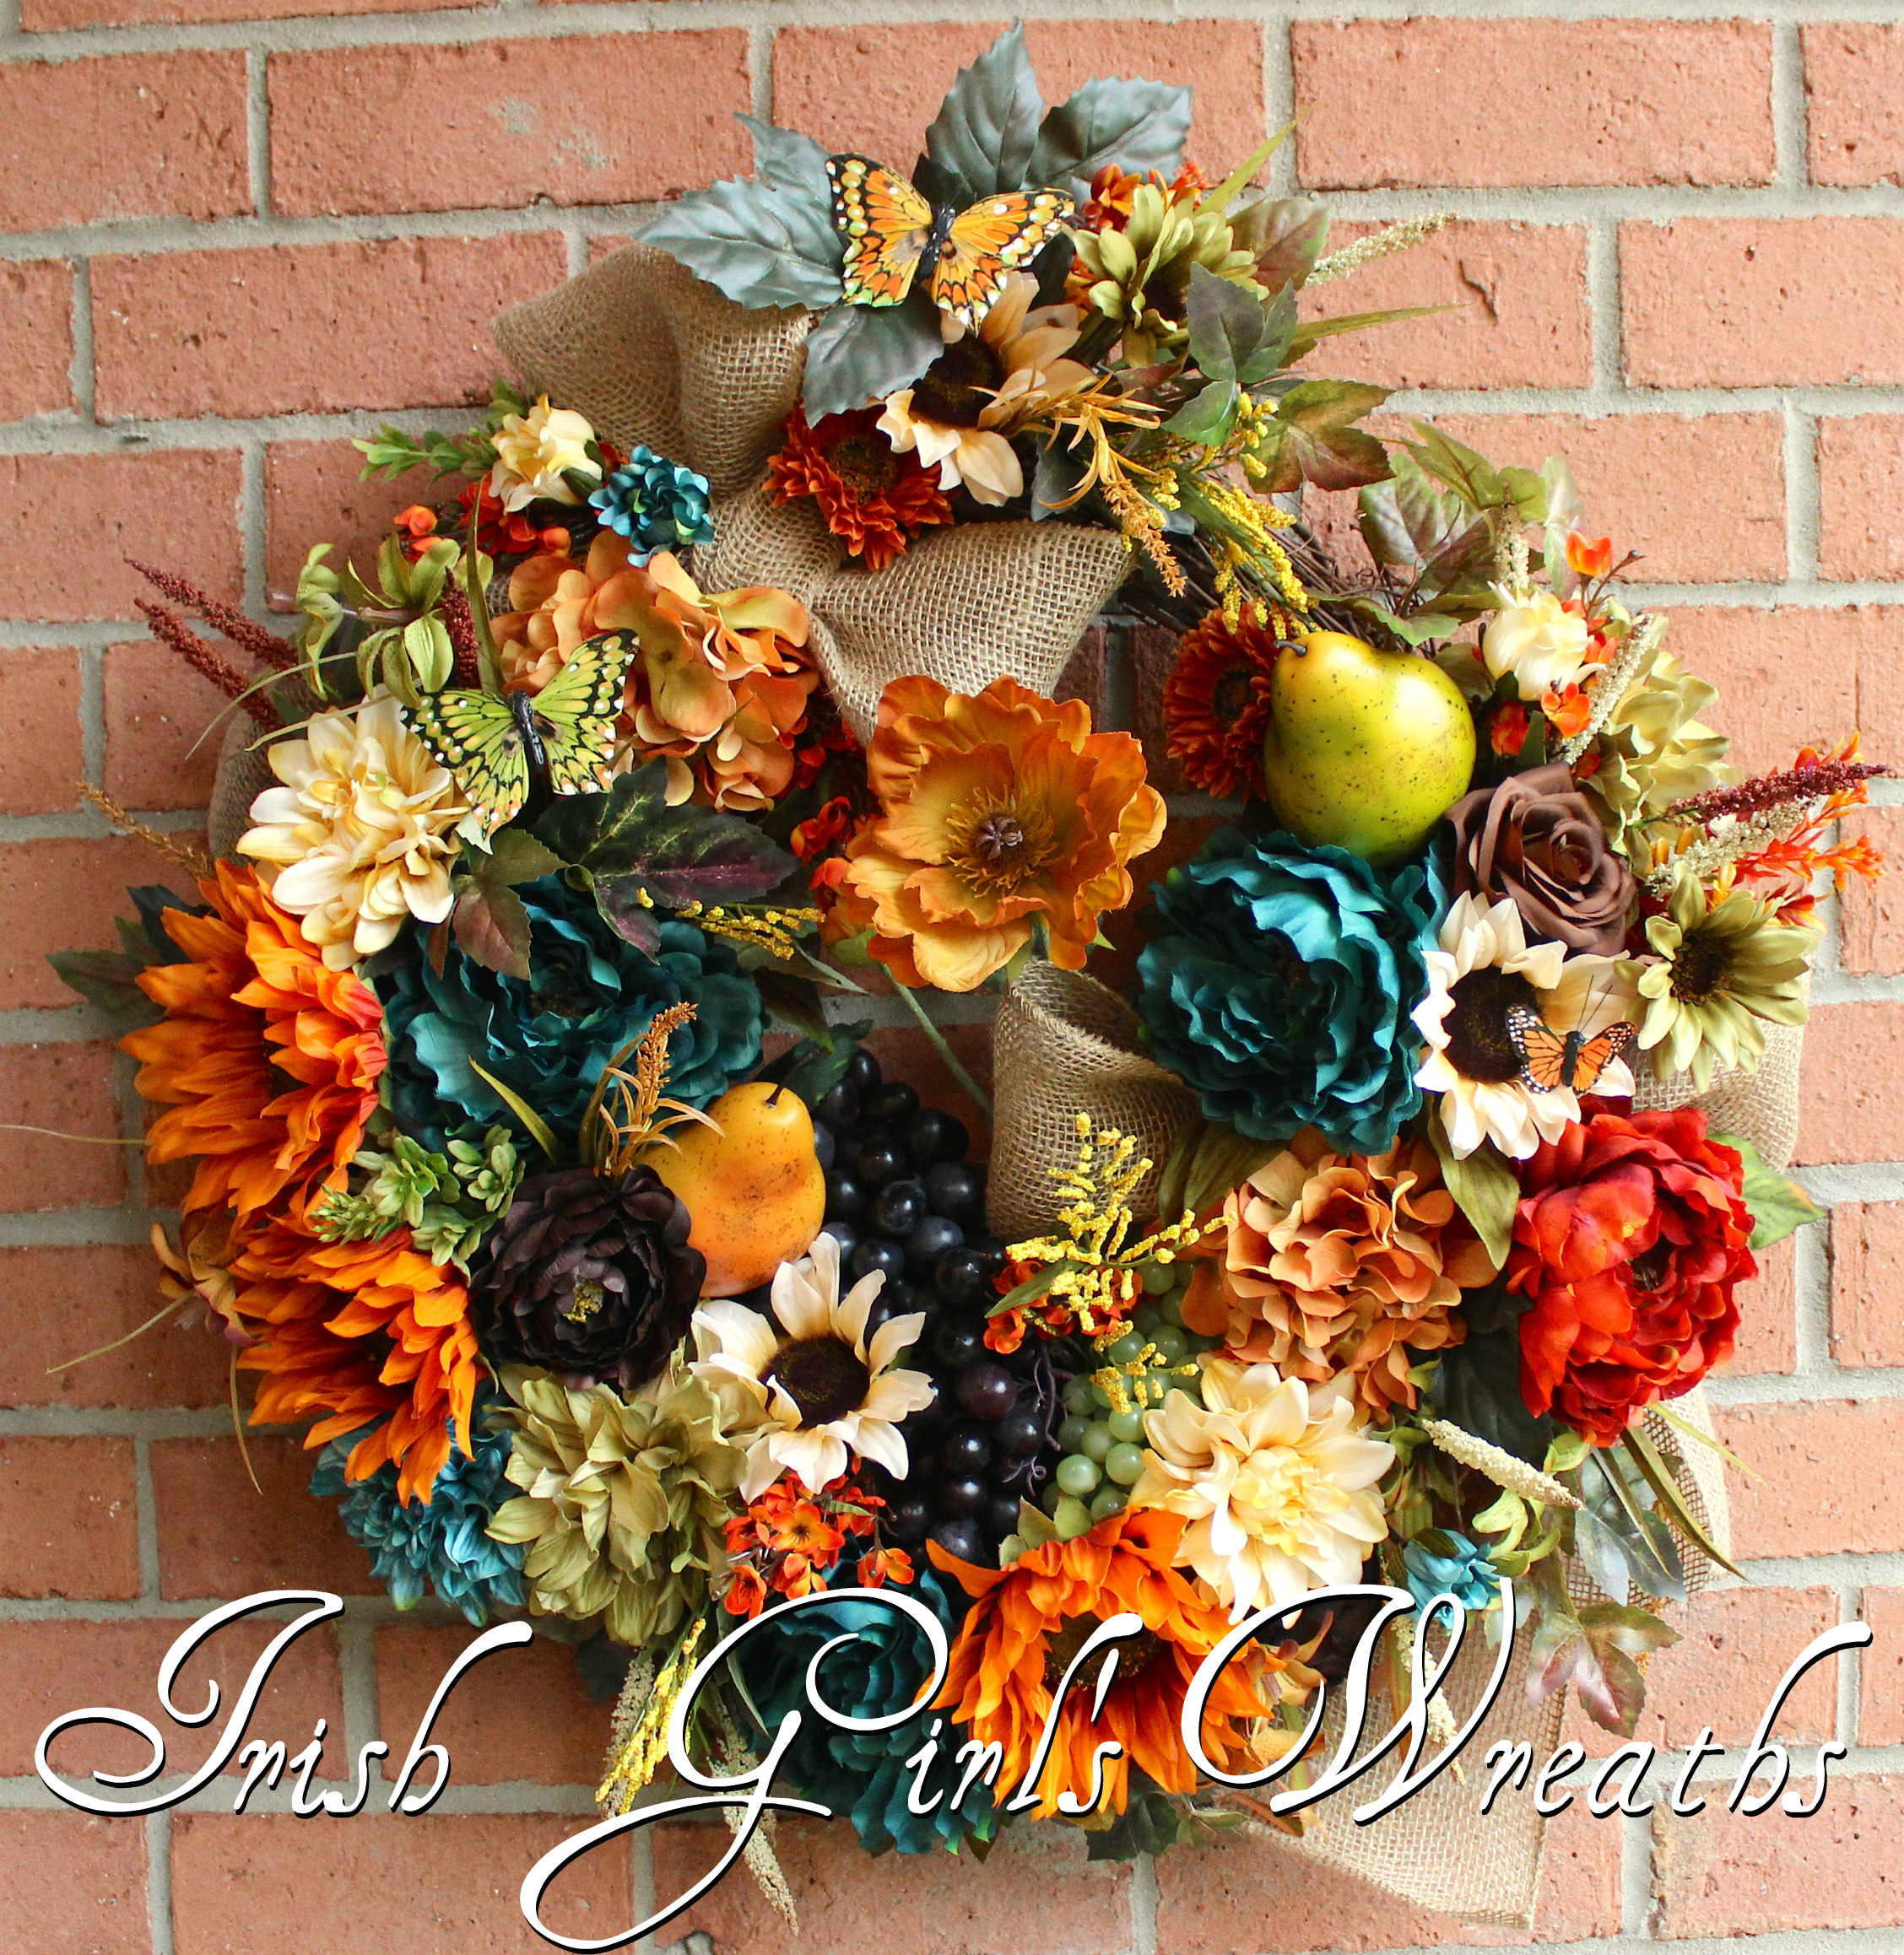 Large Rustic Teal Tuscan Elegance Wreath, French Country Floral Wreath